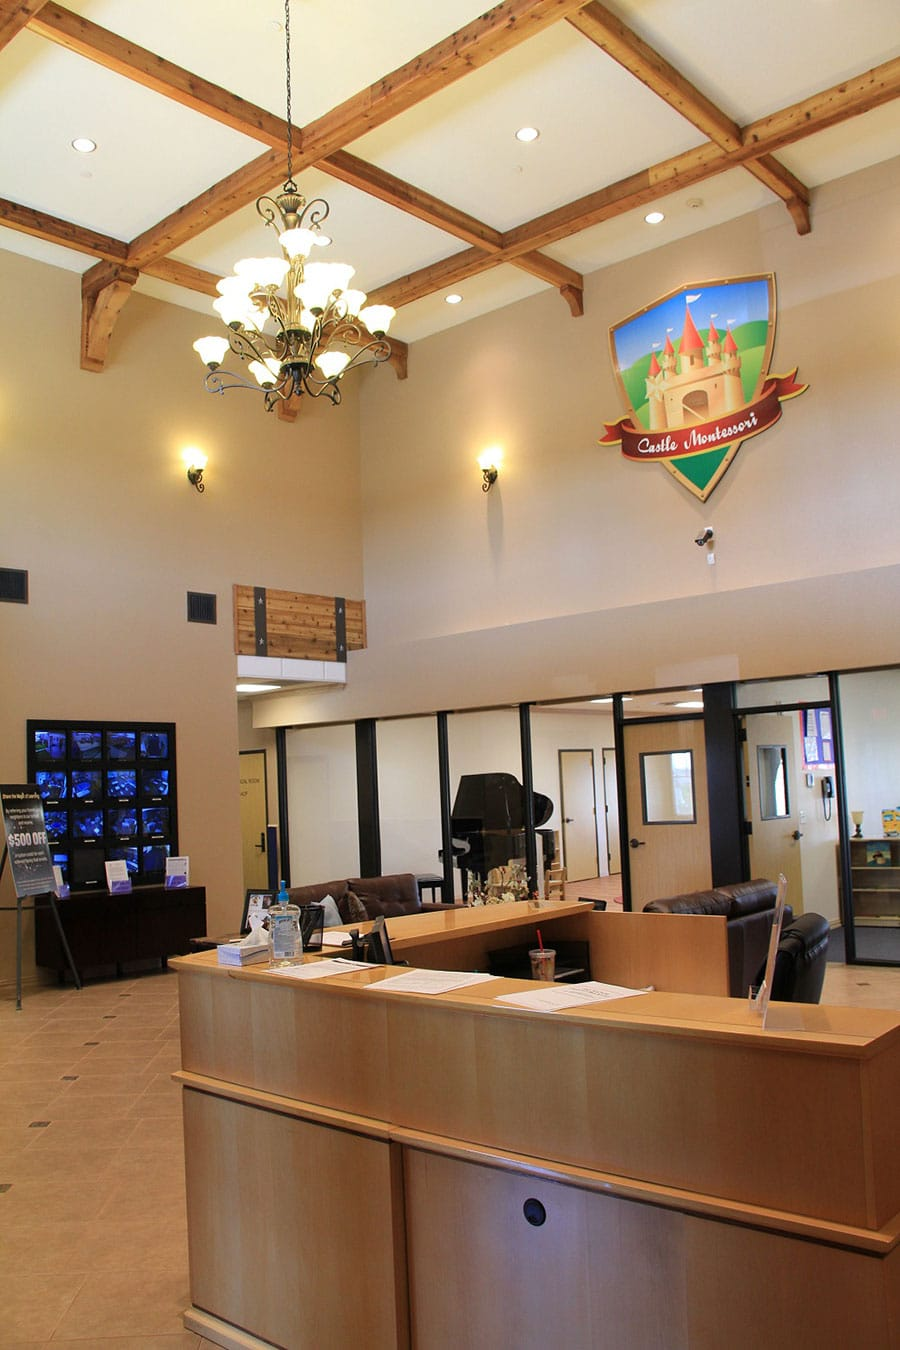 Lobby with security monitors